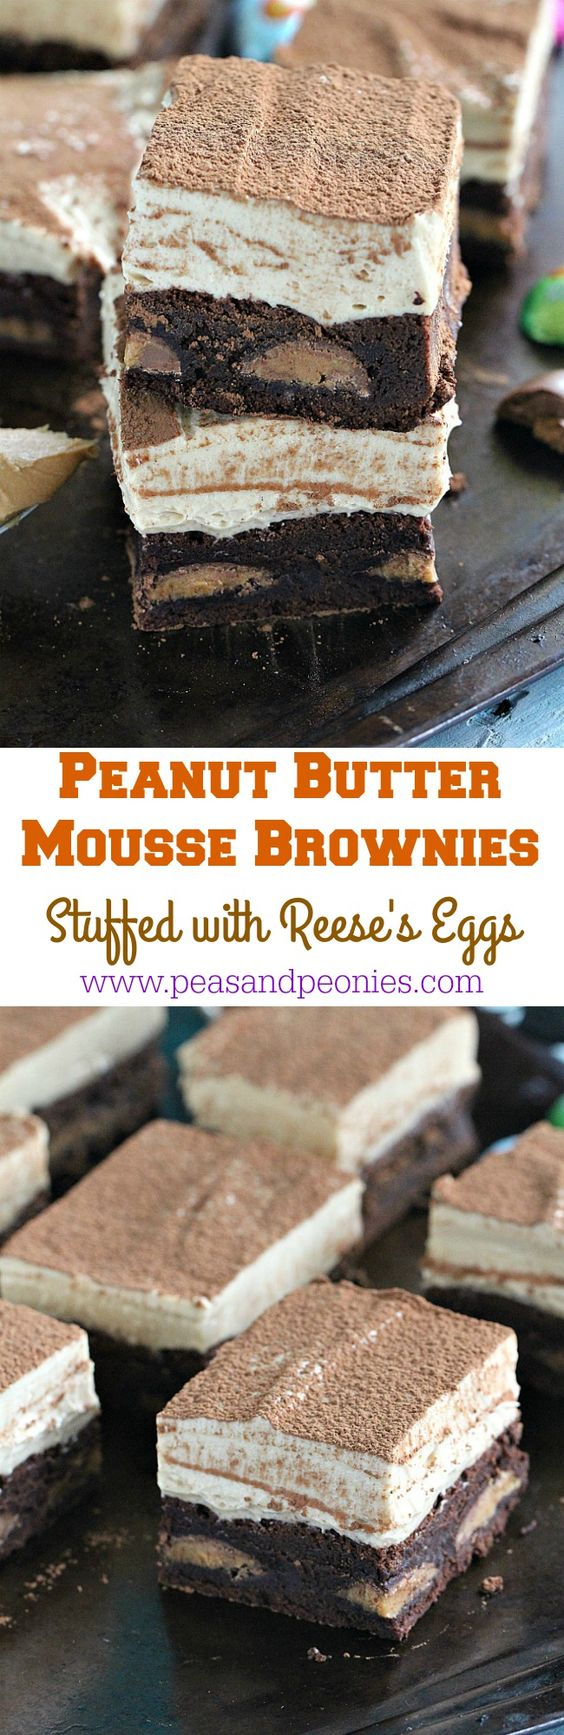 Chocolate Peanut Butter Brownies...